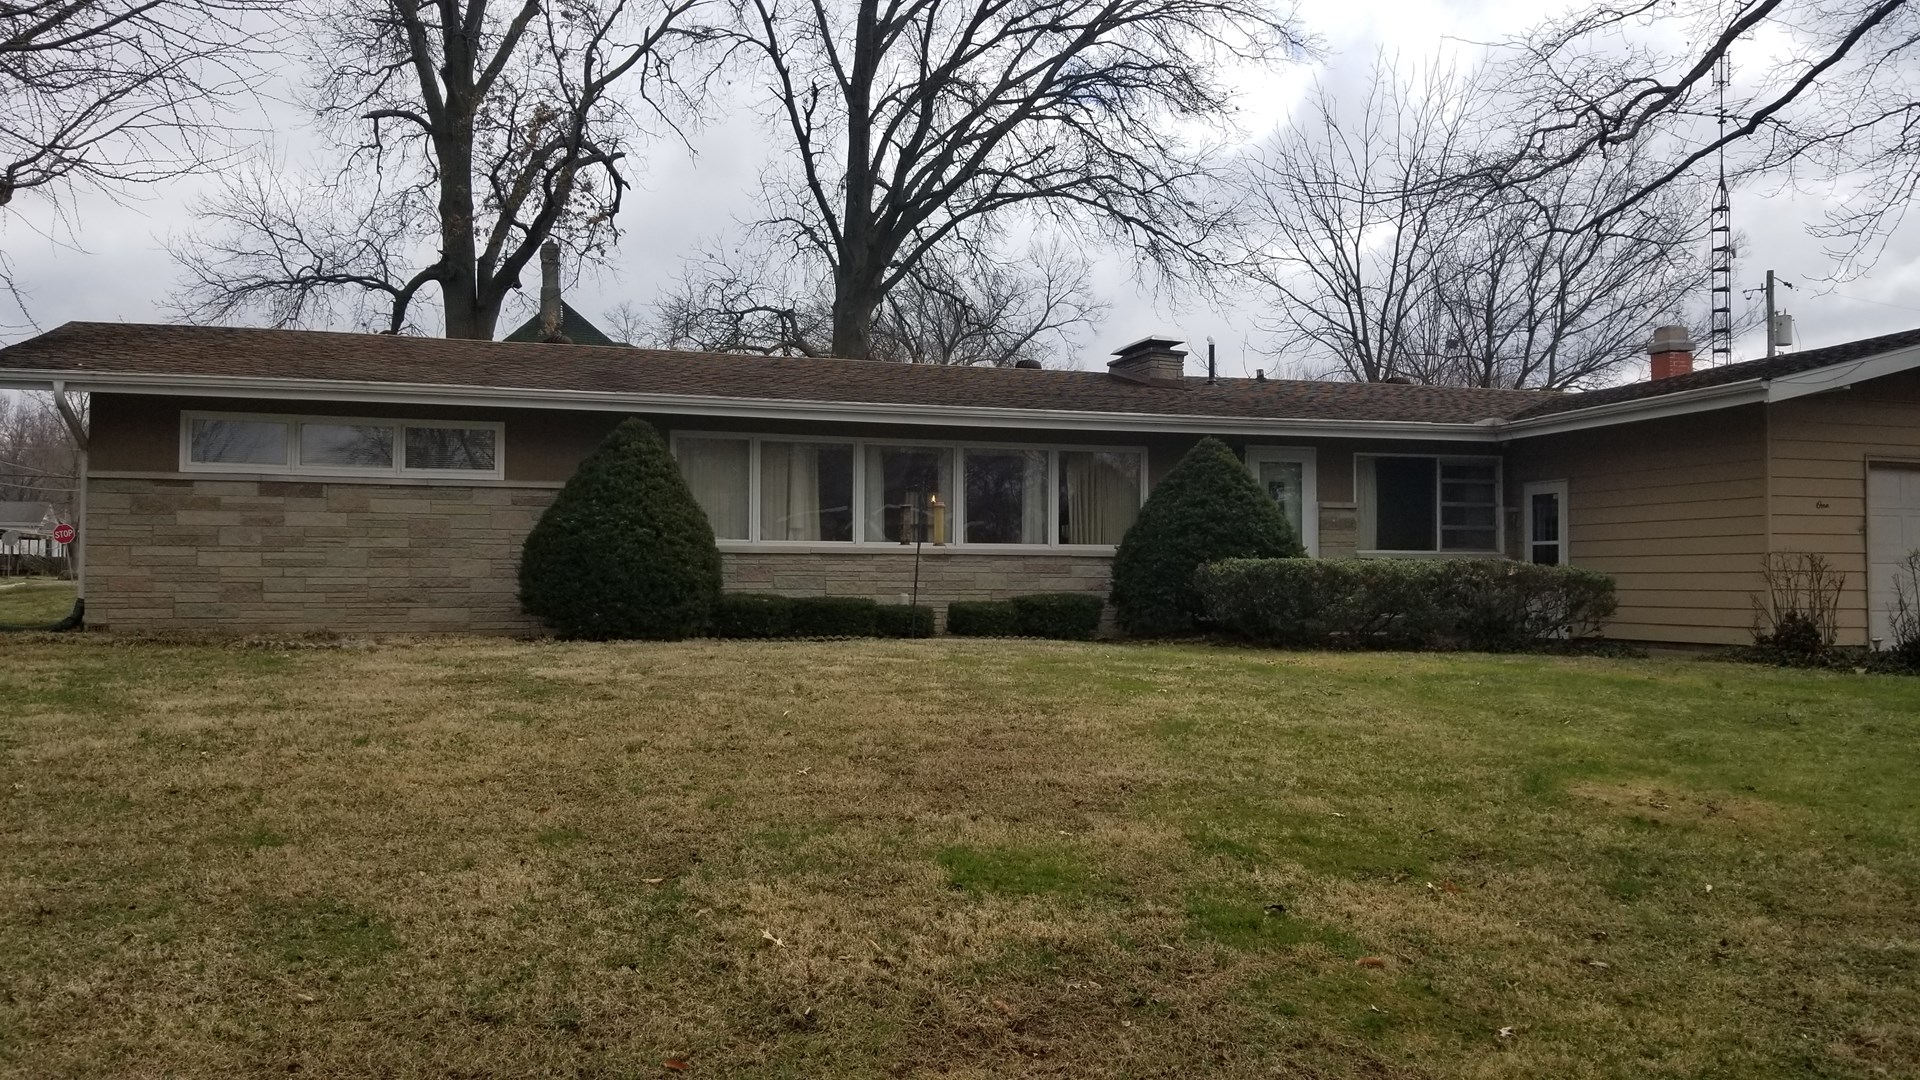 Carlinville 4 Bedroom Ranch, Sunroom, Nice Location, Shed